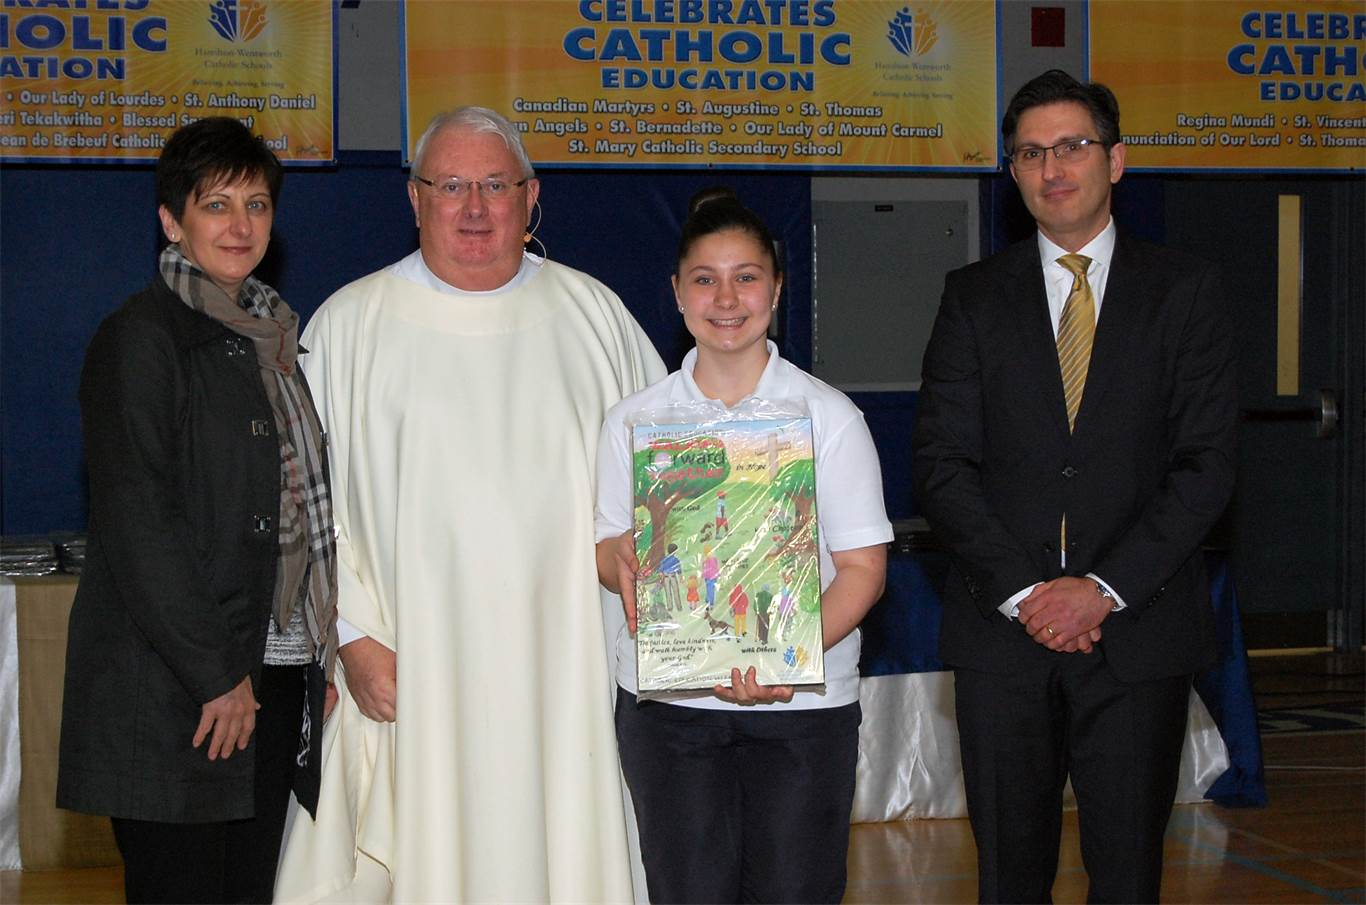 This year's Catholic Education Week commemorative plaque was designed by Sofia Cumuric, a grade 7 student at St. Martin of Tours Catholic Elementary School. Sofia and her mother were presented with a plaqued copy of her poster by the Very Rev. Father O'Mahony and Catholic Education Week Committee Co-chair Adrian DeTullio.